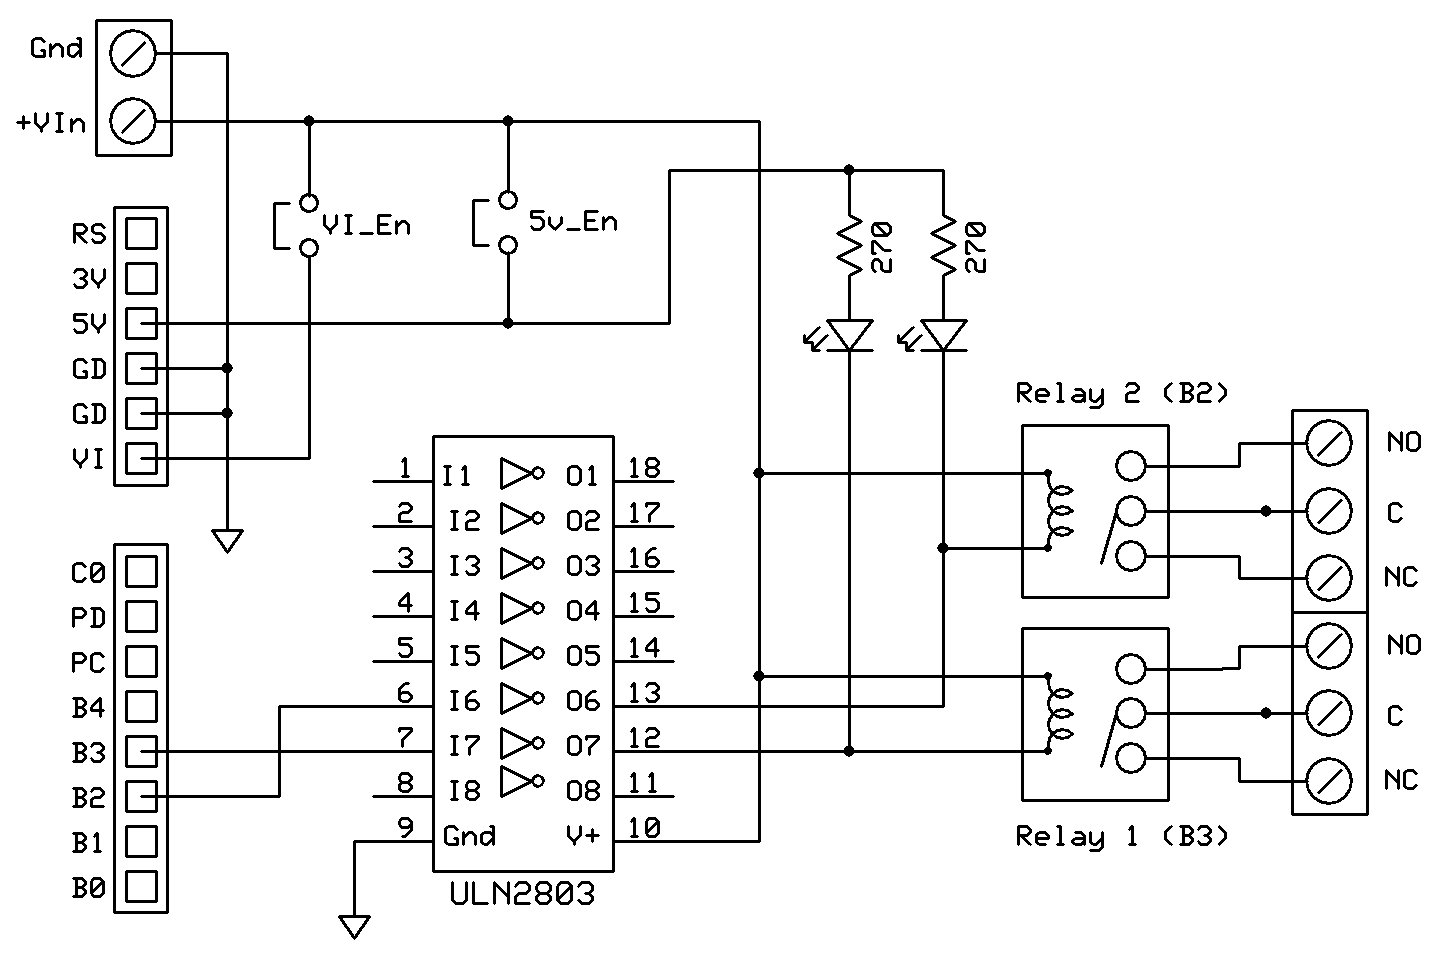 Fh 3633 Pin Ice Cube Relay Wiring Diagram Wiring Diagram For 8 Pin Ice Cube Wiring Diagram